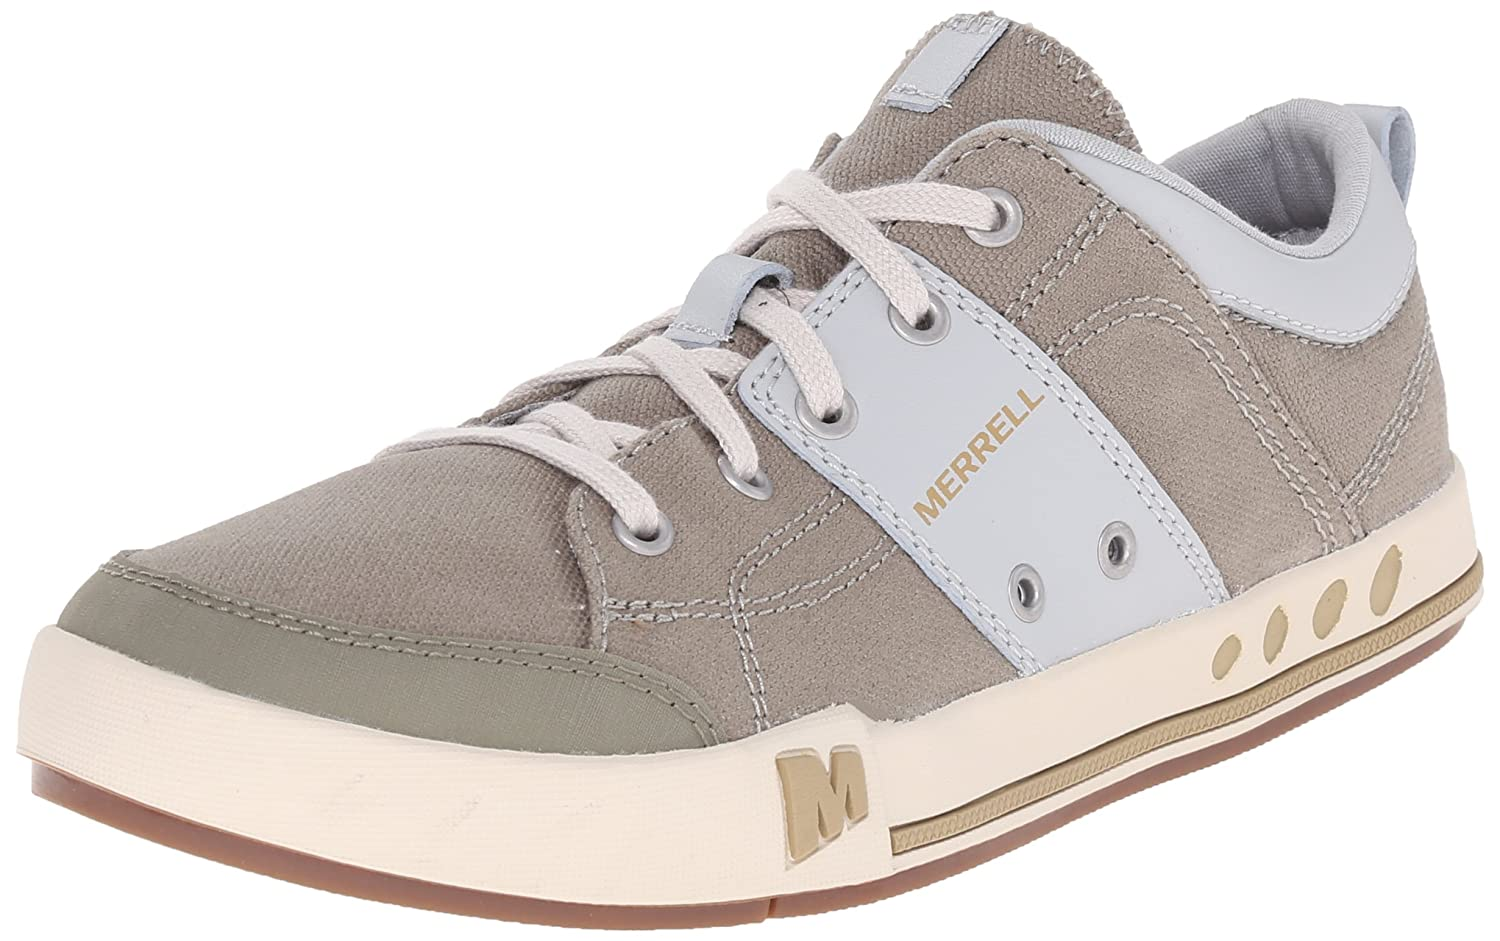 Merrell Women's Rant Casual Lace-up B00YDI3ZV6 6.5 B(M) US|Putty